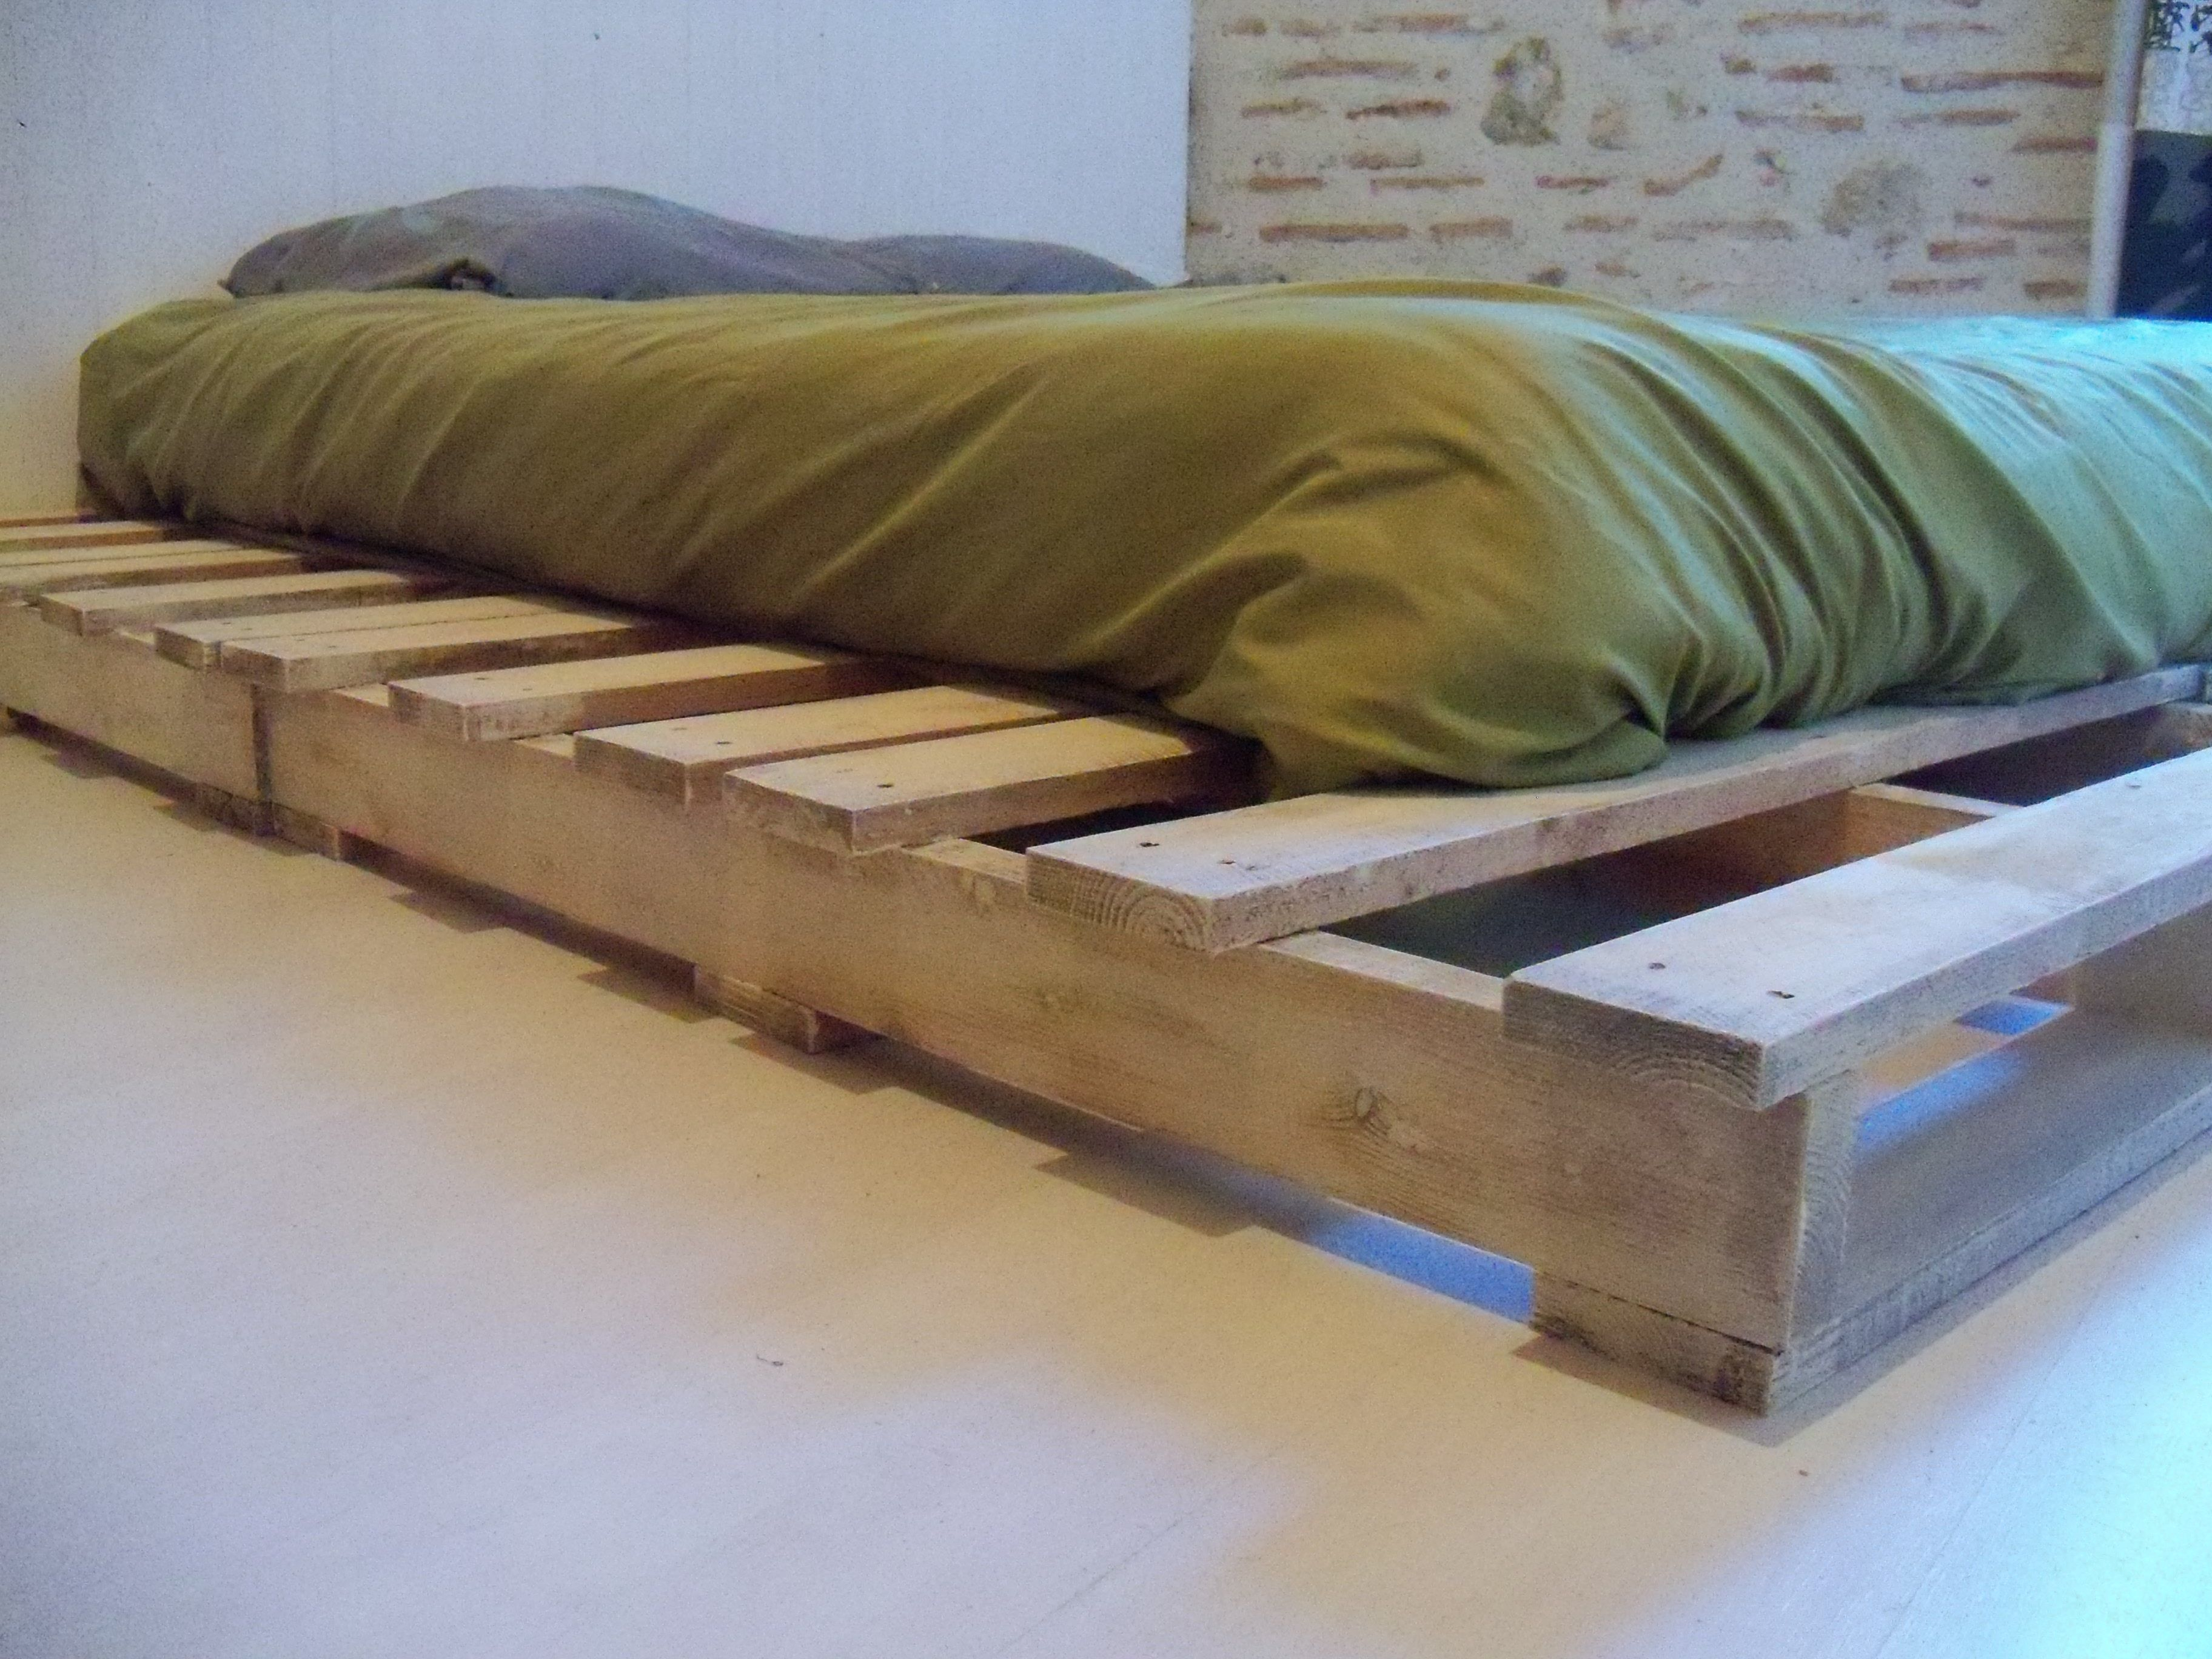 Pallet Bed Made From Recycled Pallets | El papa, Madeira y Palets